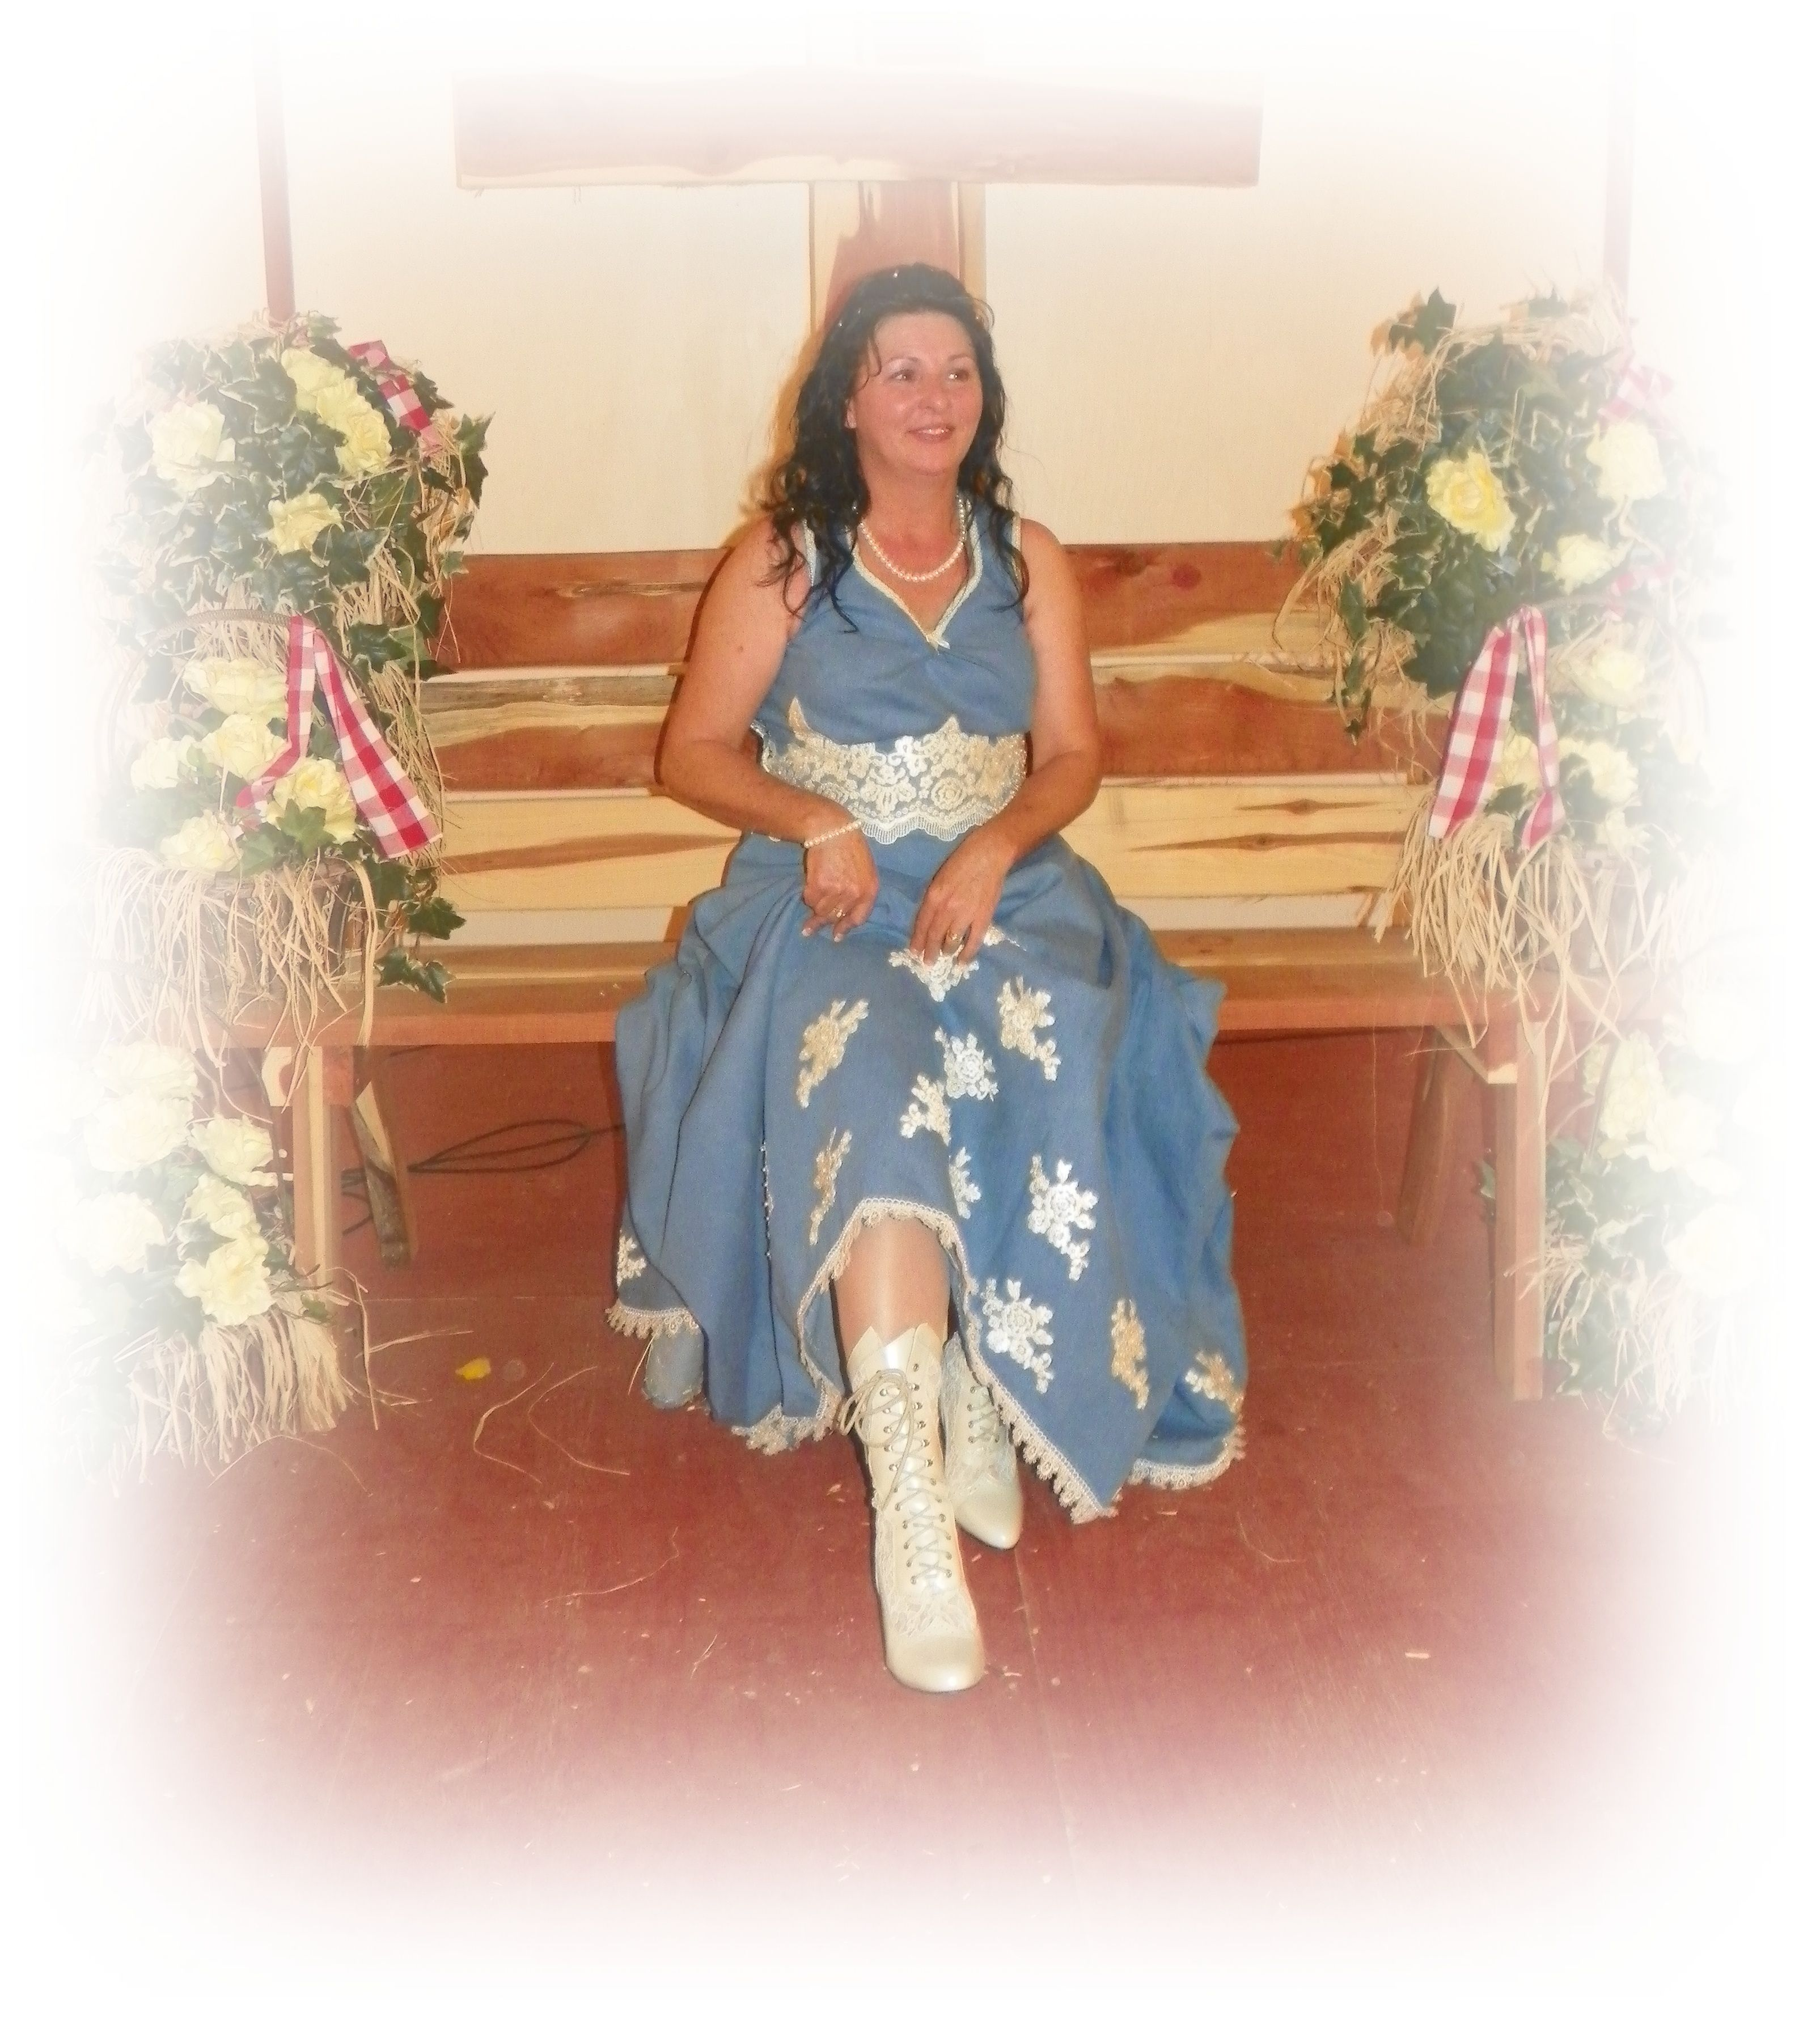 My denim wedding dress that I made myself without a pattern... check out the cute boots!